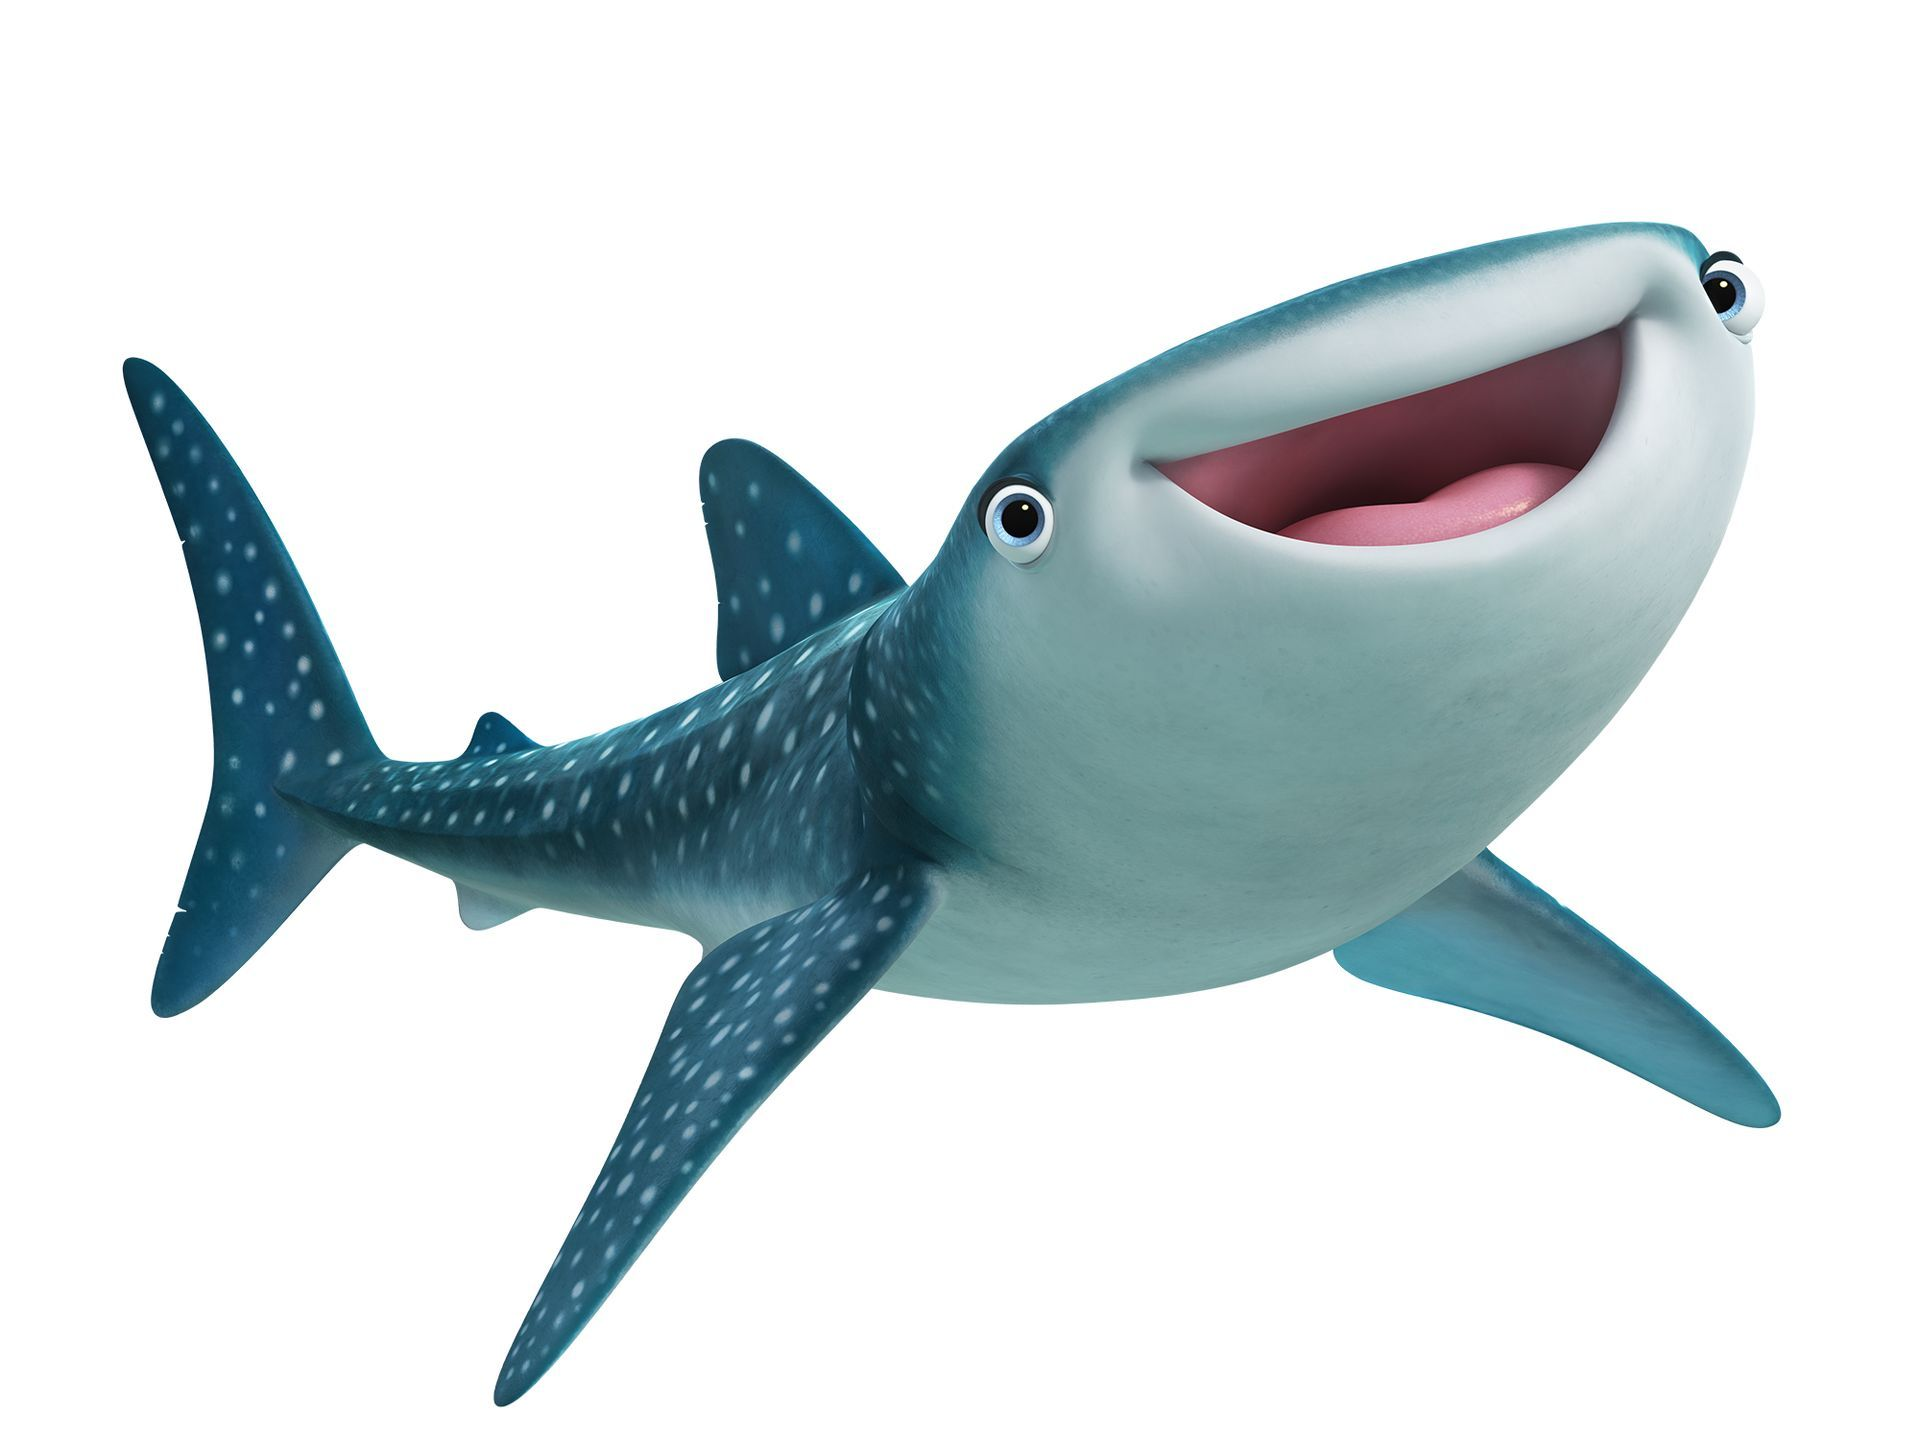 Finding dory images reveal all new animated animals collider for Immagini dory